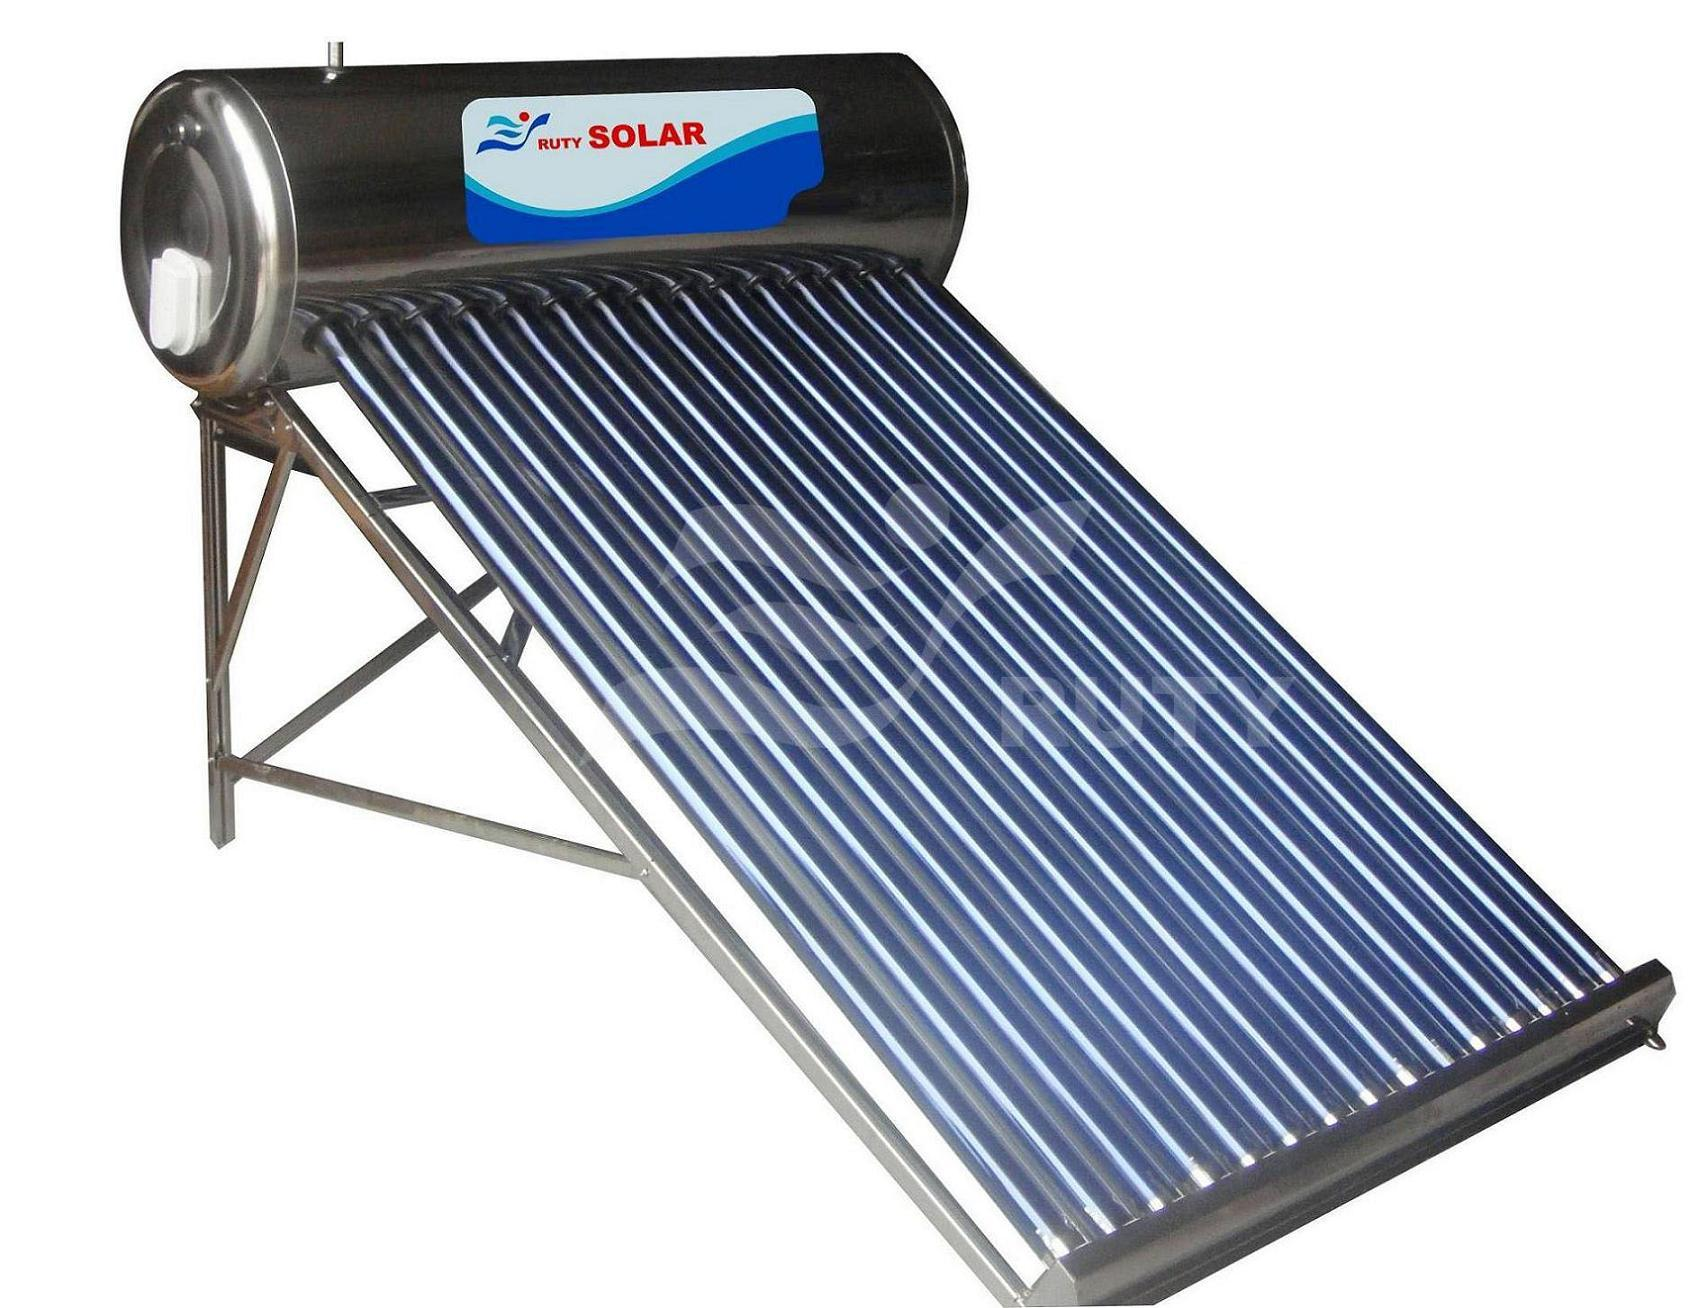 solar water heating Diy solar water heater a homemade flat panel copper coil solar water heater easy diy full instructions super hot temps (sustained at 165f+) fast hot w.